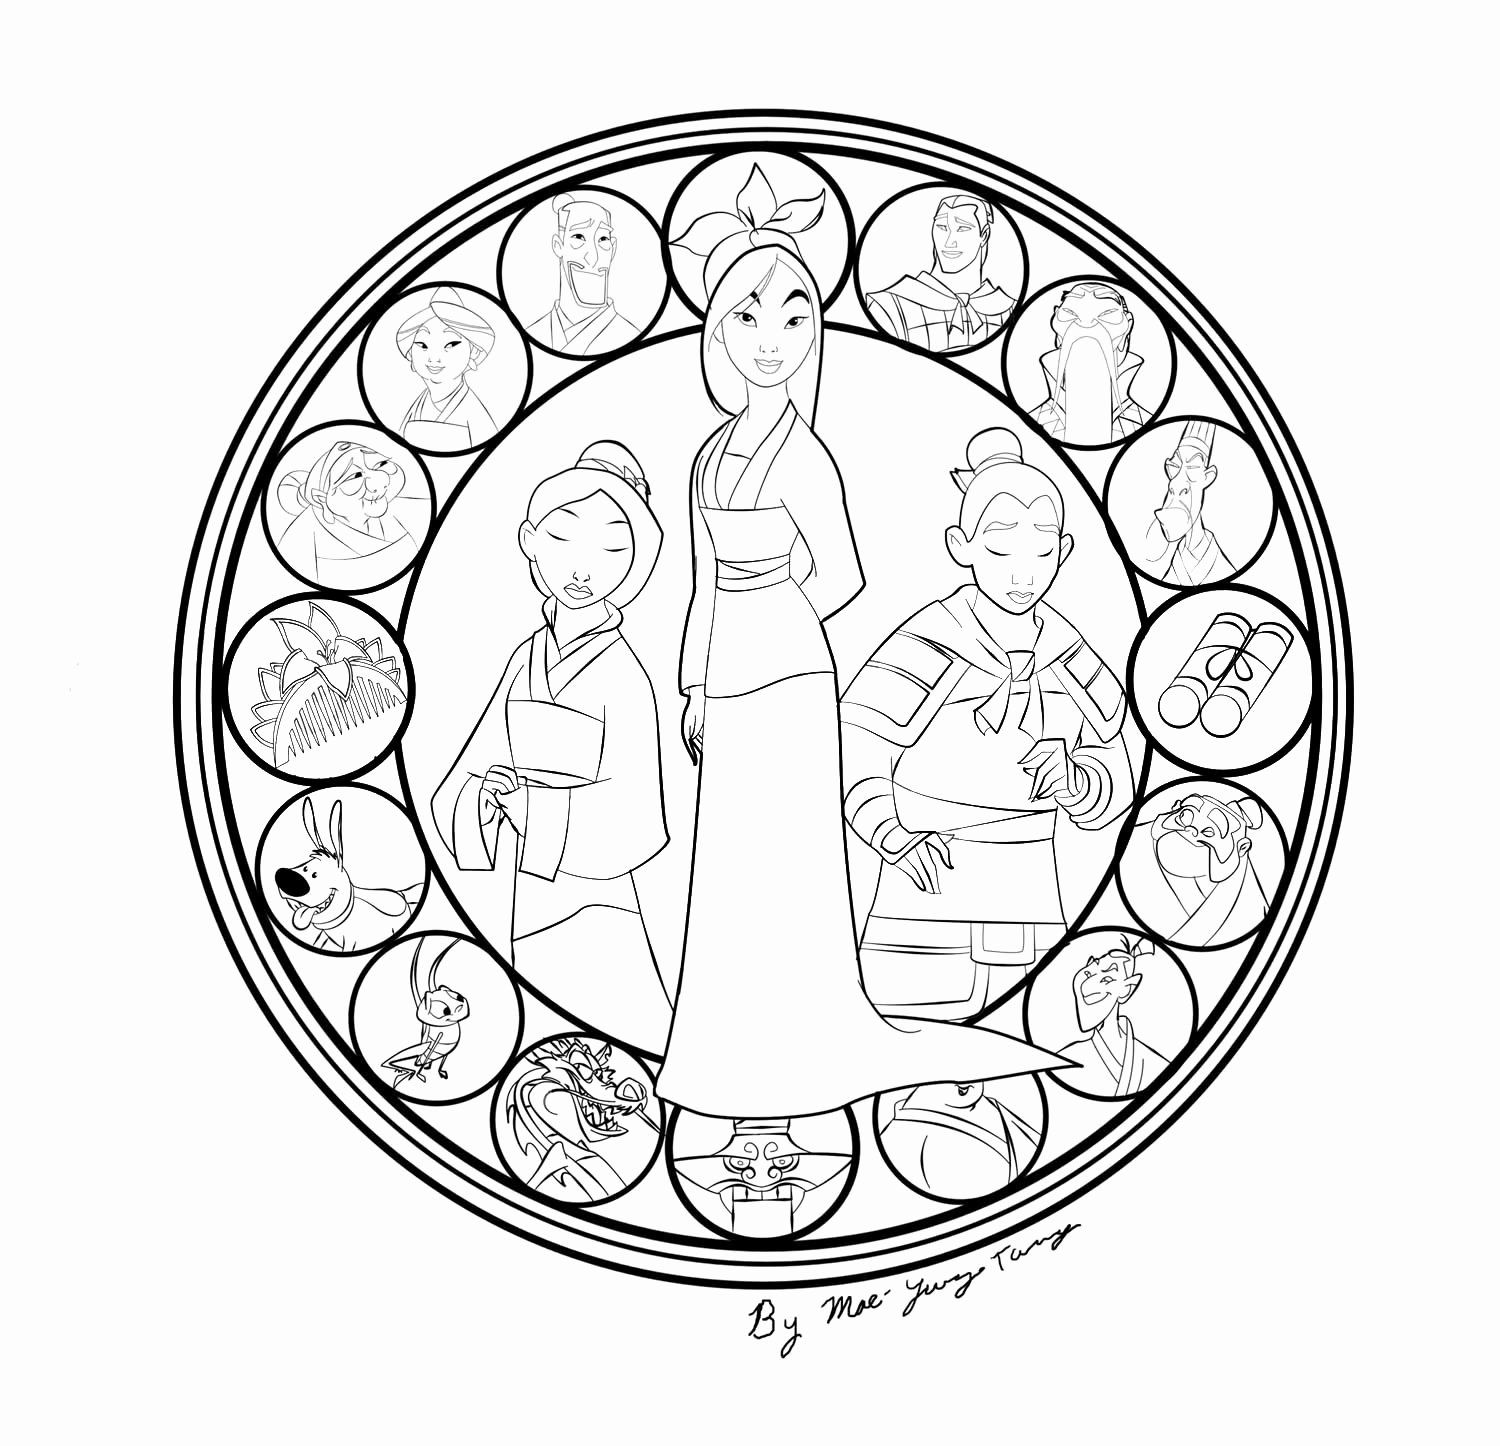 Disney Stained Glass Coloring Pages Beautiful Coloring Mandalas Fruit Coloring Pages Princess Coloring Pages Disney Princess Coloring Pages [ 1446 x 1500 Pixel ]